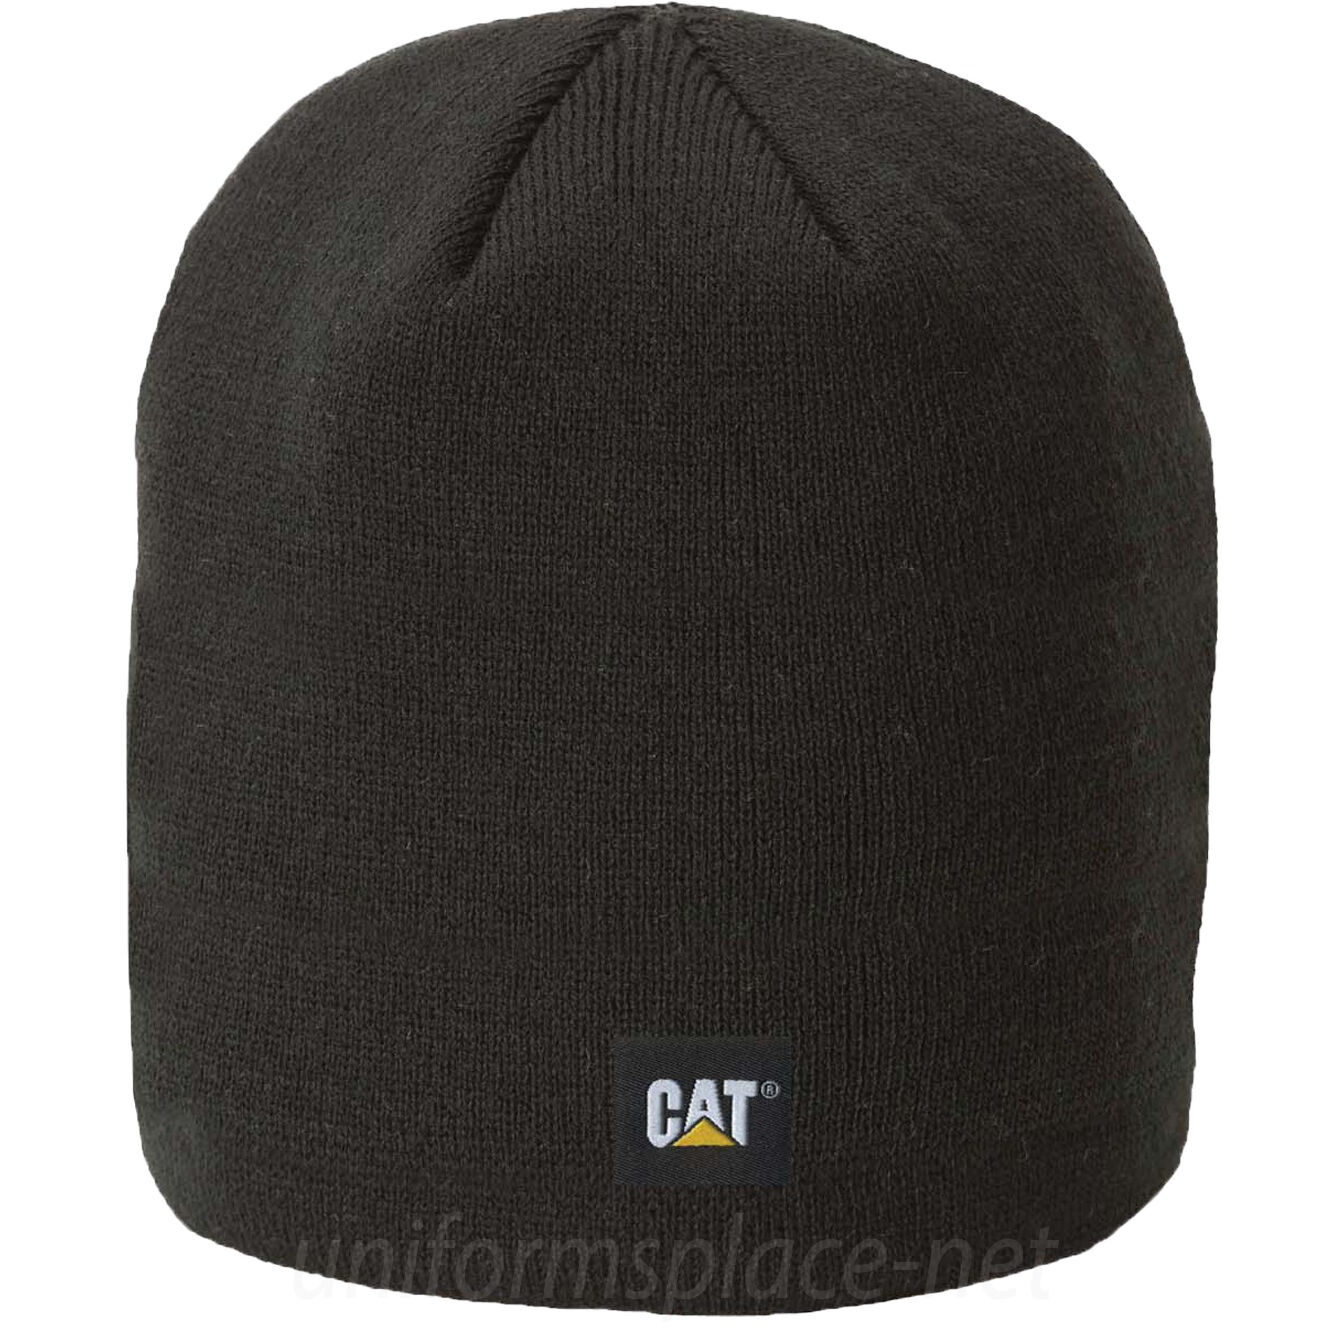 CATERPILLAR CAT 1128043 Branded grey or black knitted beanie cap